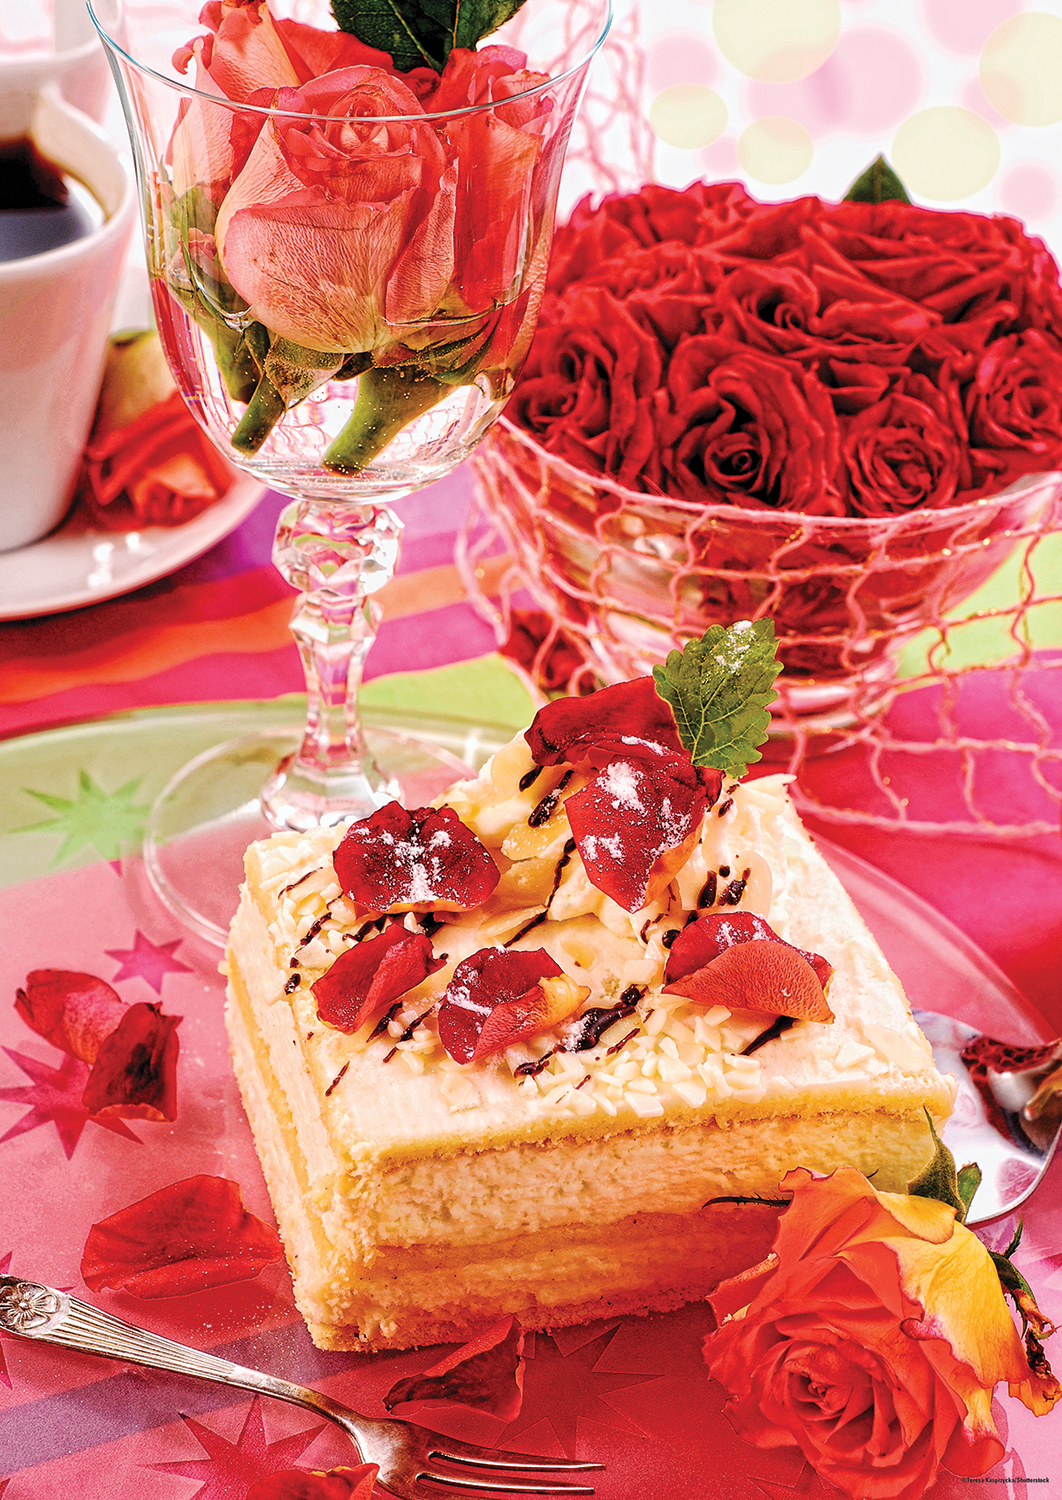 Confections almond cake jigsaw puzzle for Confection cuisine